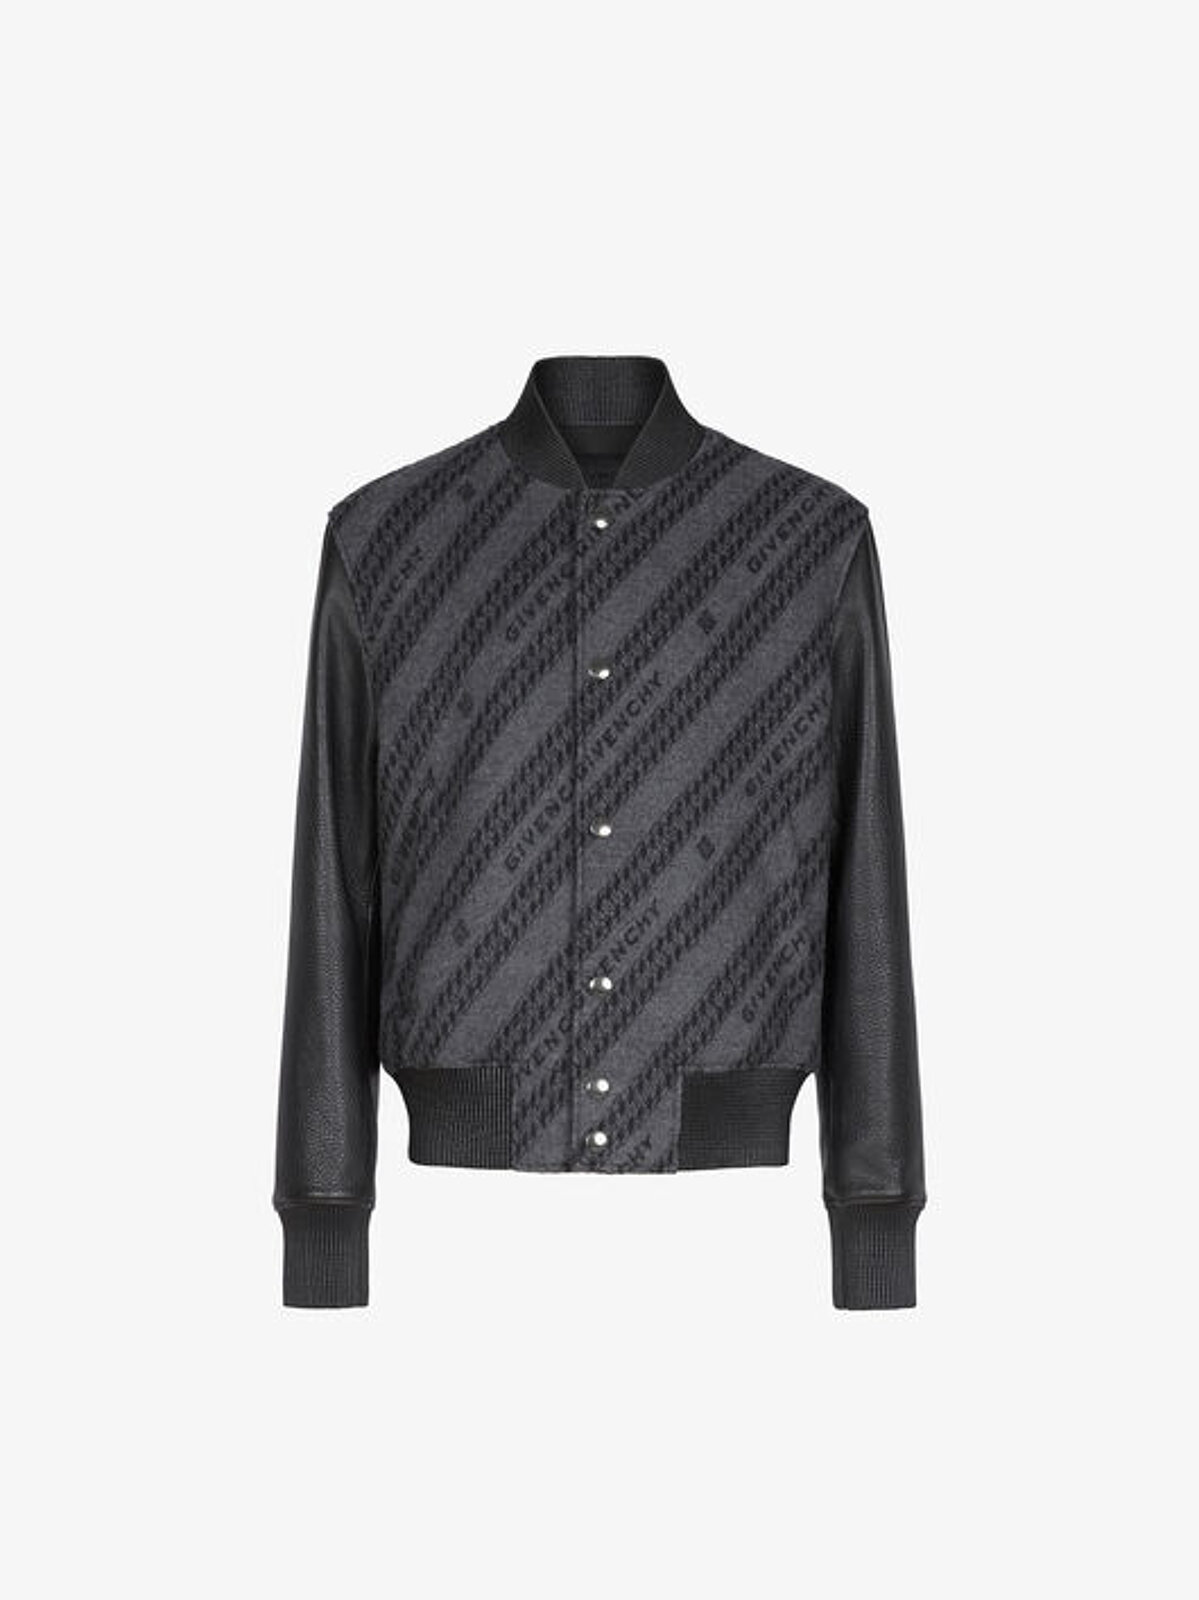 Bomber Givenchy Chaîne In Jacquard E Pelle - Givenchy